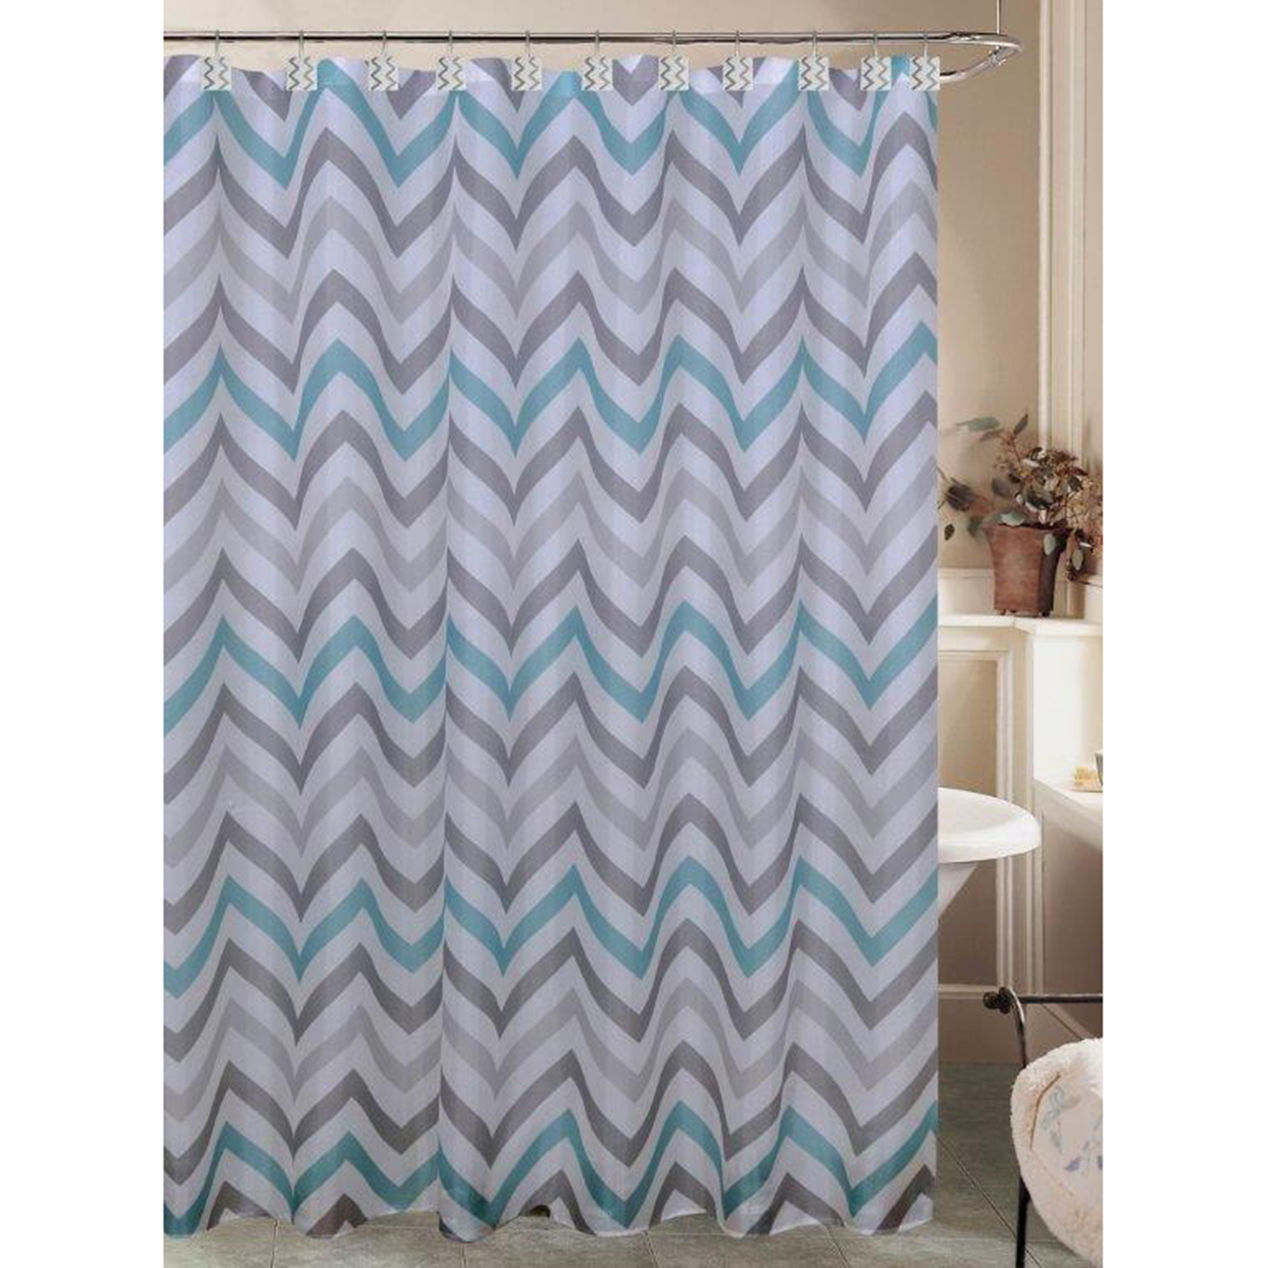 Marvelous Decoration Grey Chevron Shower Curtain Charming Design for sizing 1268 X 1268